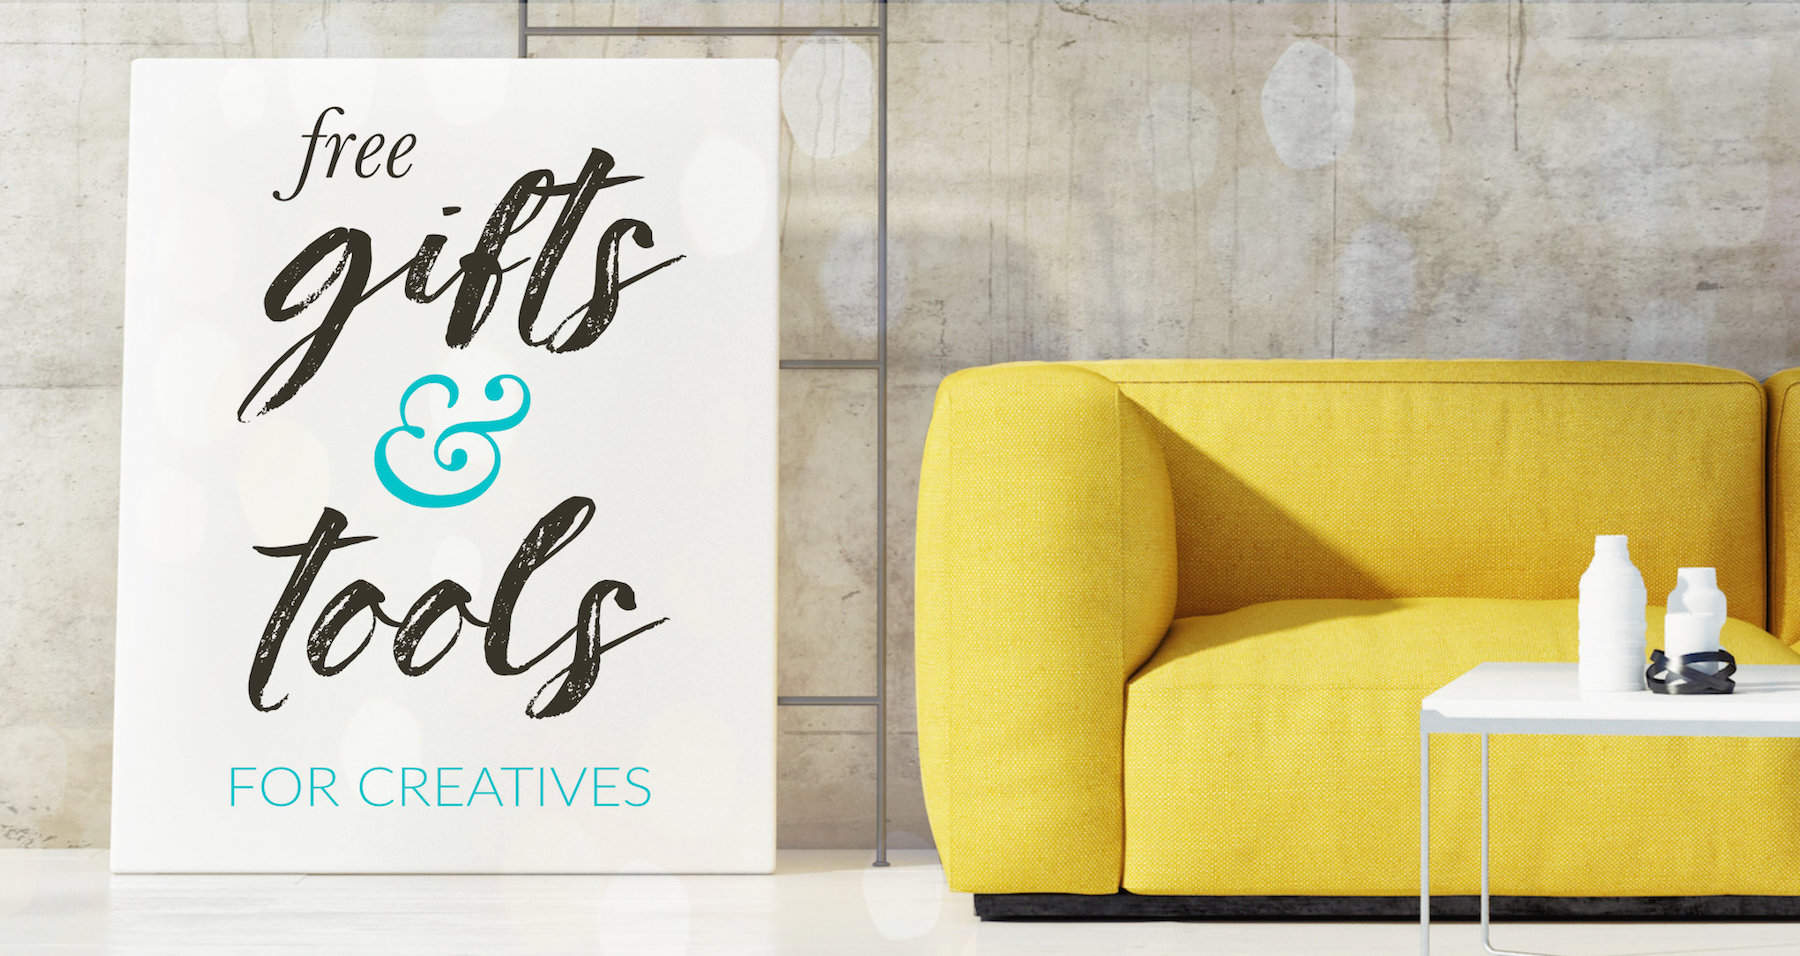 free gifts tools for creatives writers artists